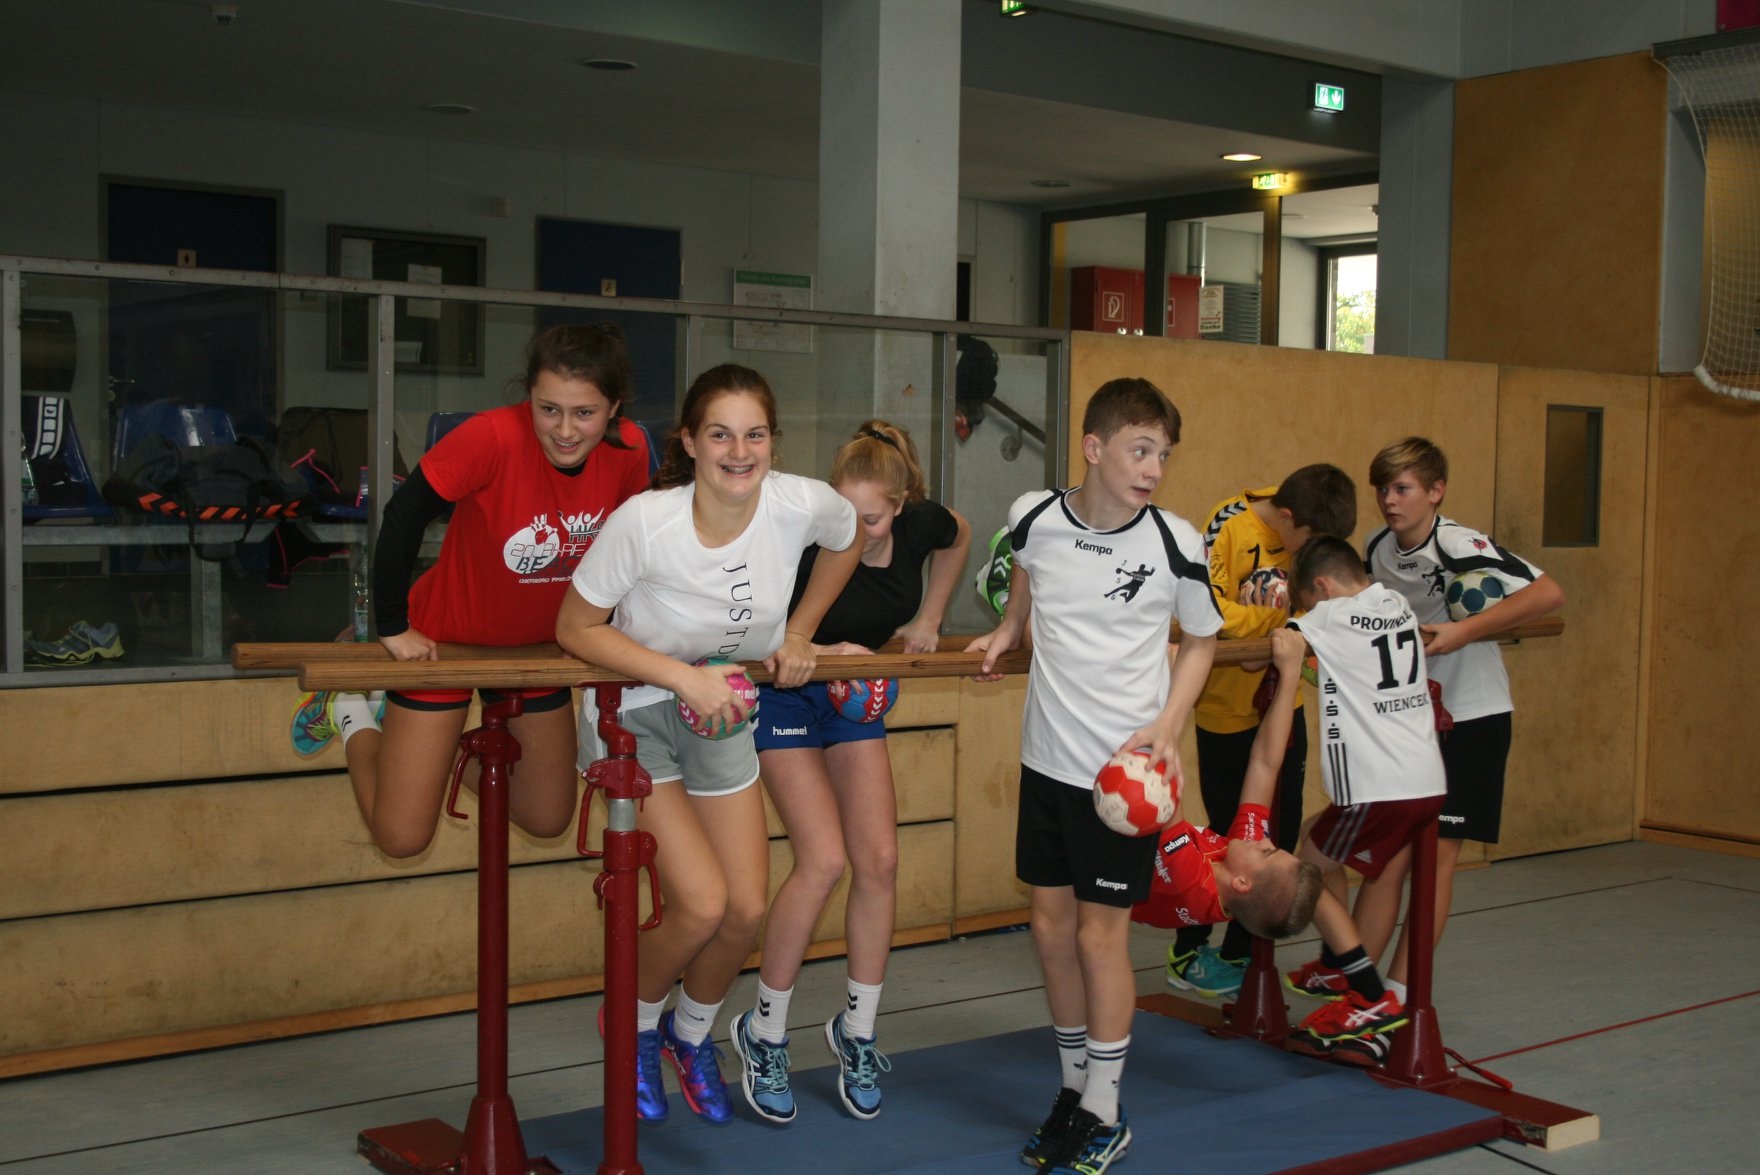 Trainingshalle Wiehl